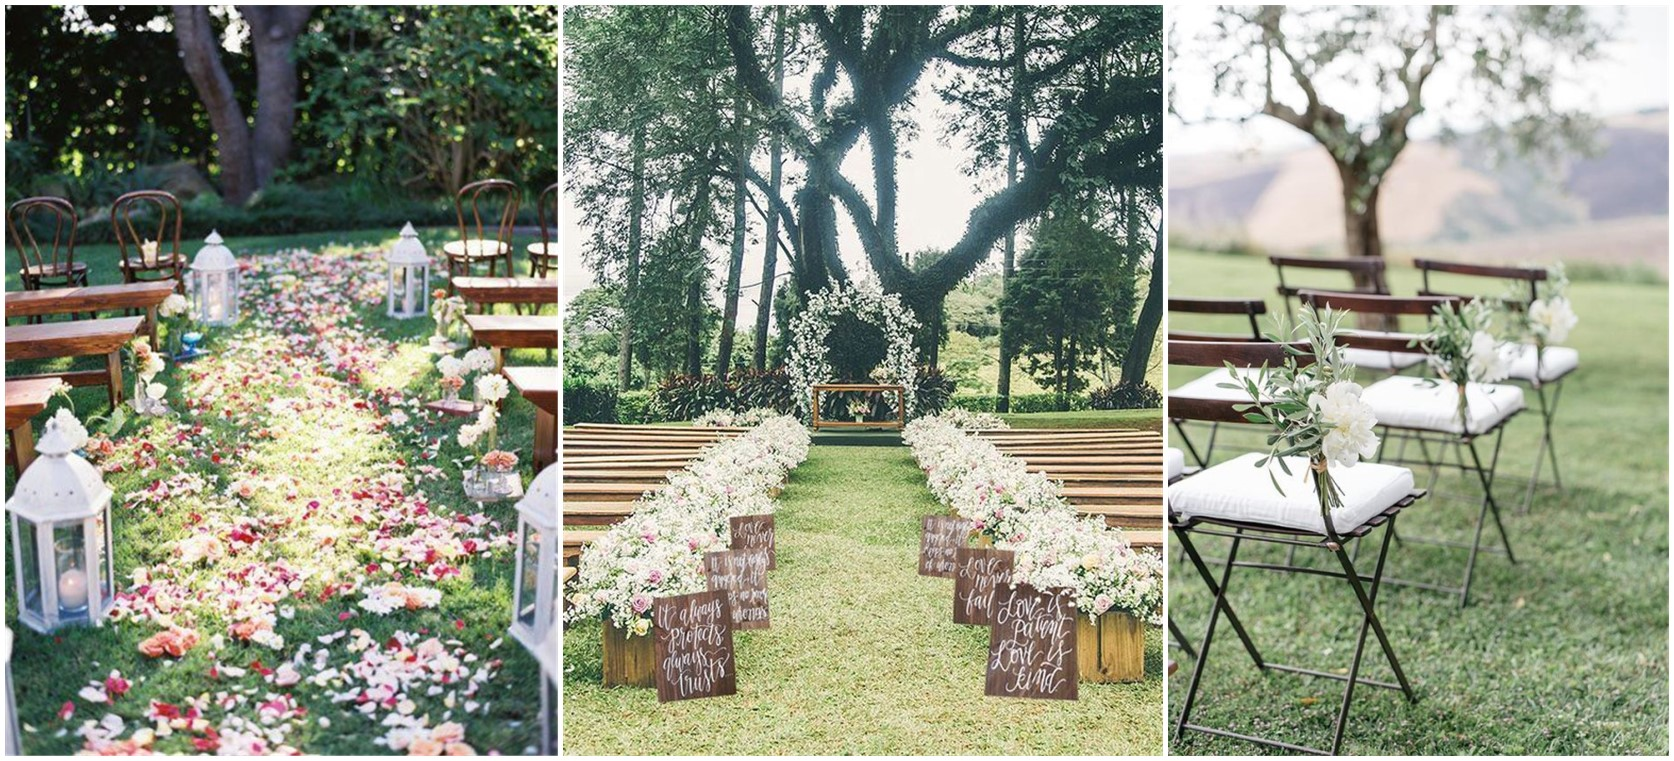 25 rustic outdoor wedding ceremony decorations ideas - Garden wedding ideas decorations ...